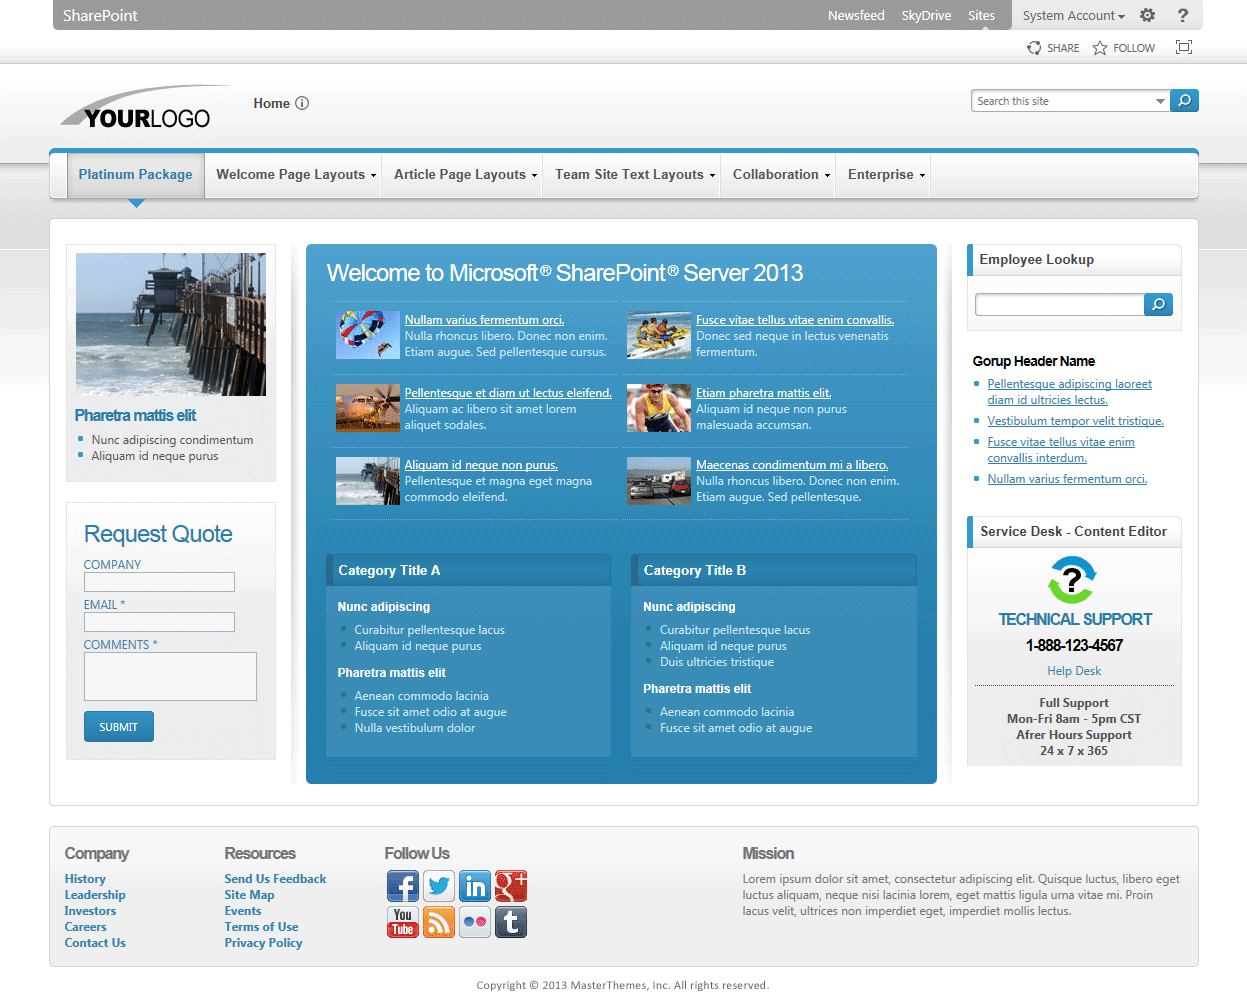 sharepoint design ideas - Sharepoint Design Ideas